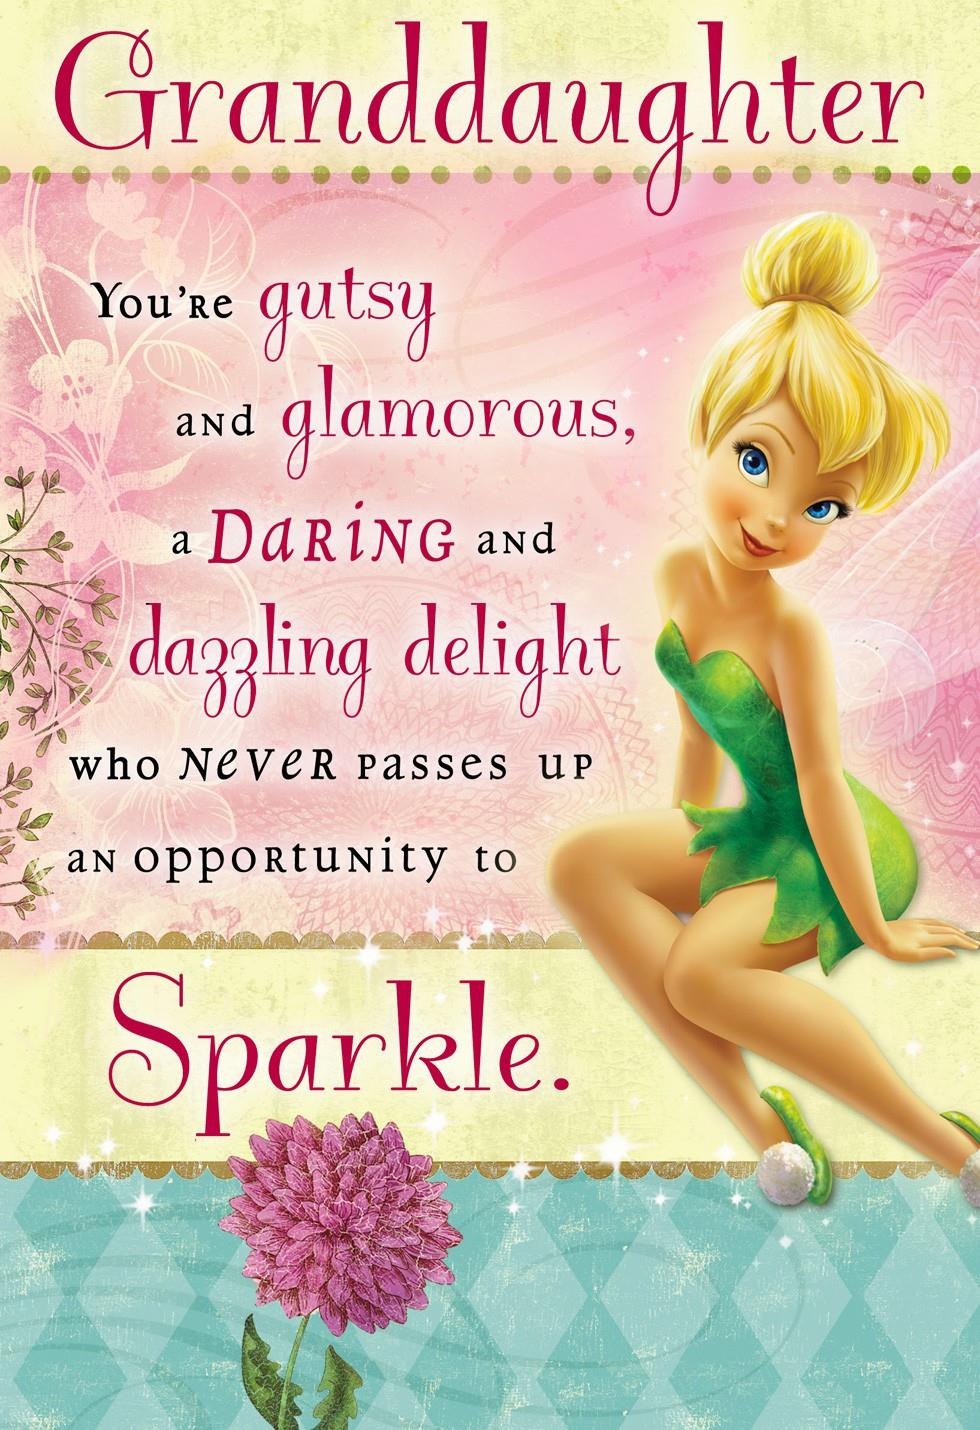 Tinker Bell Birthday Card With Stickers for Granddaughter ...